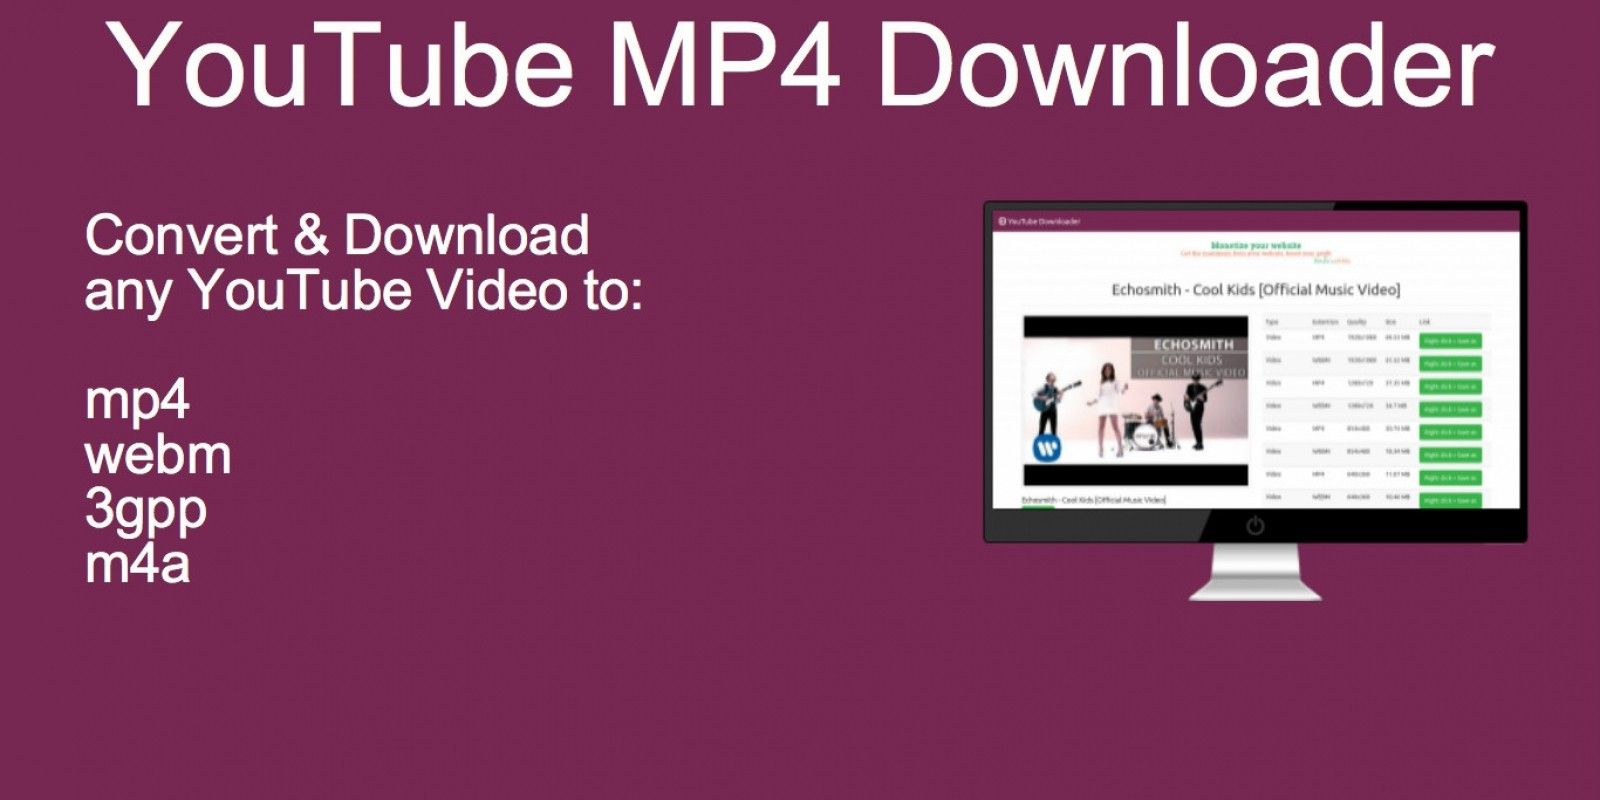 download youtube video online free hd